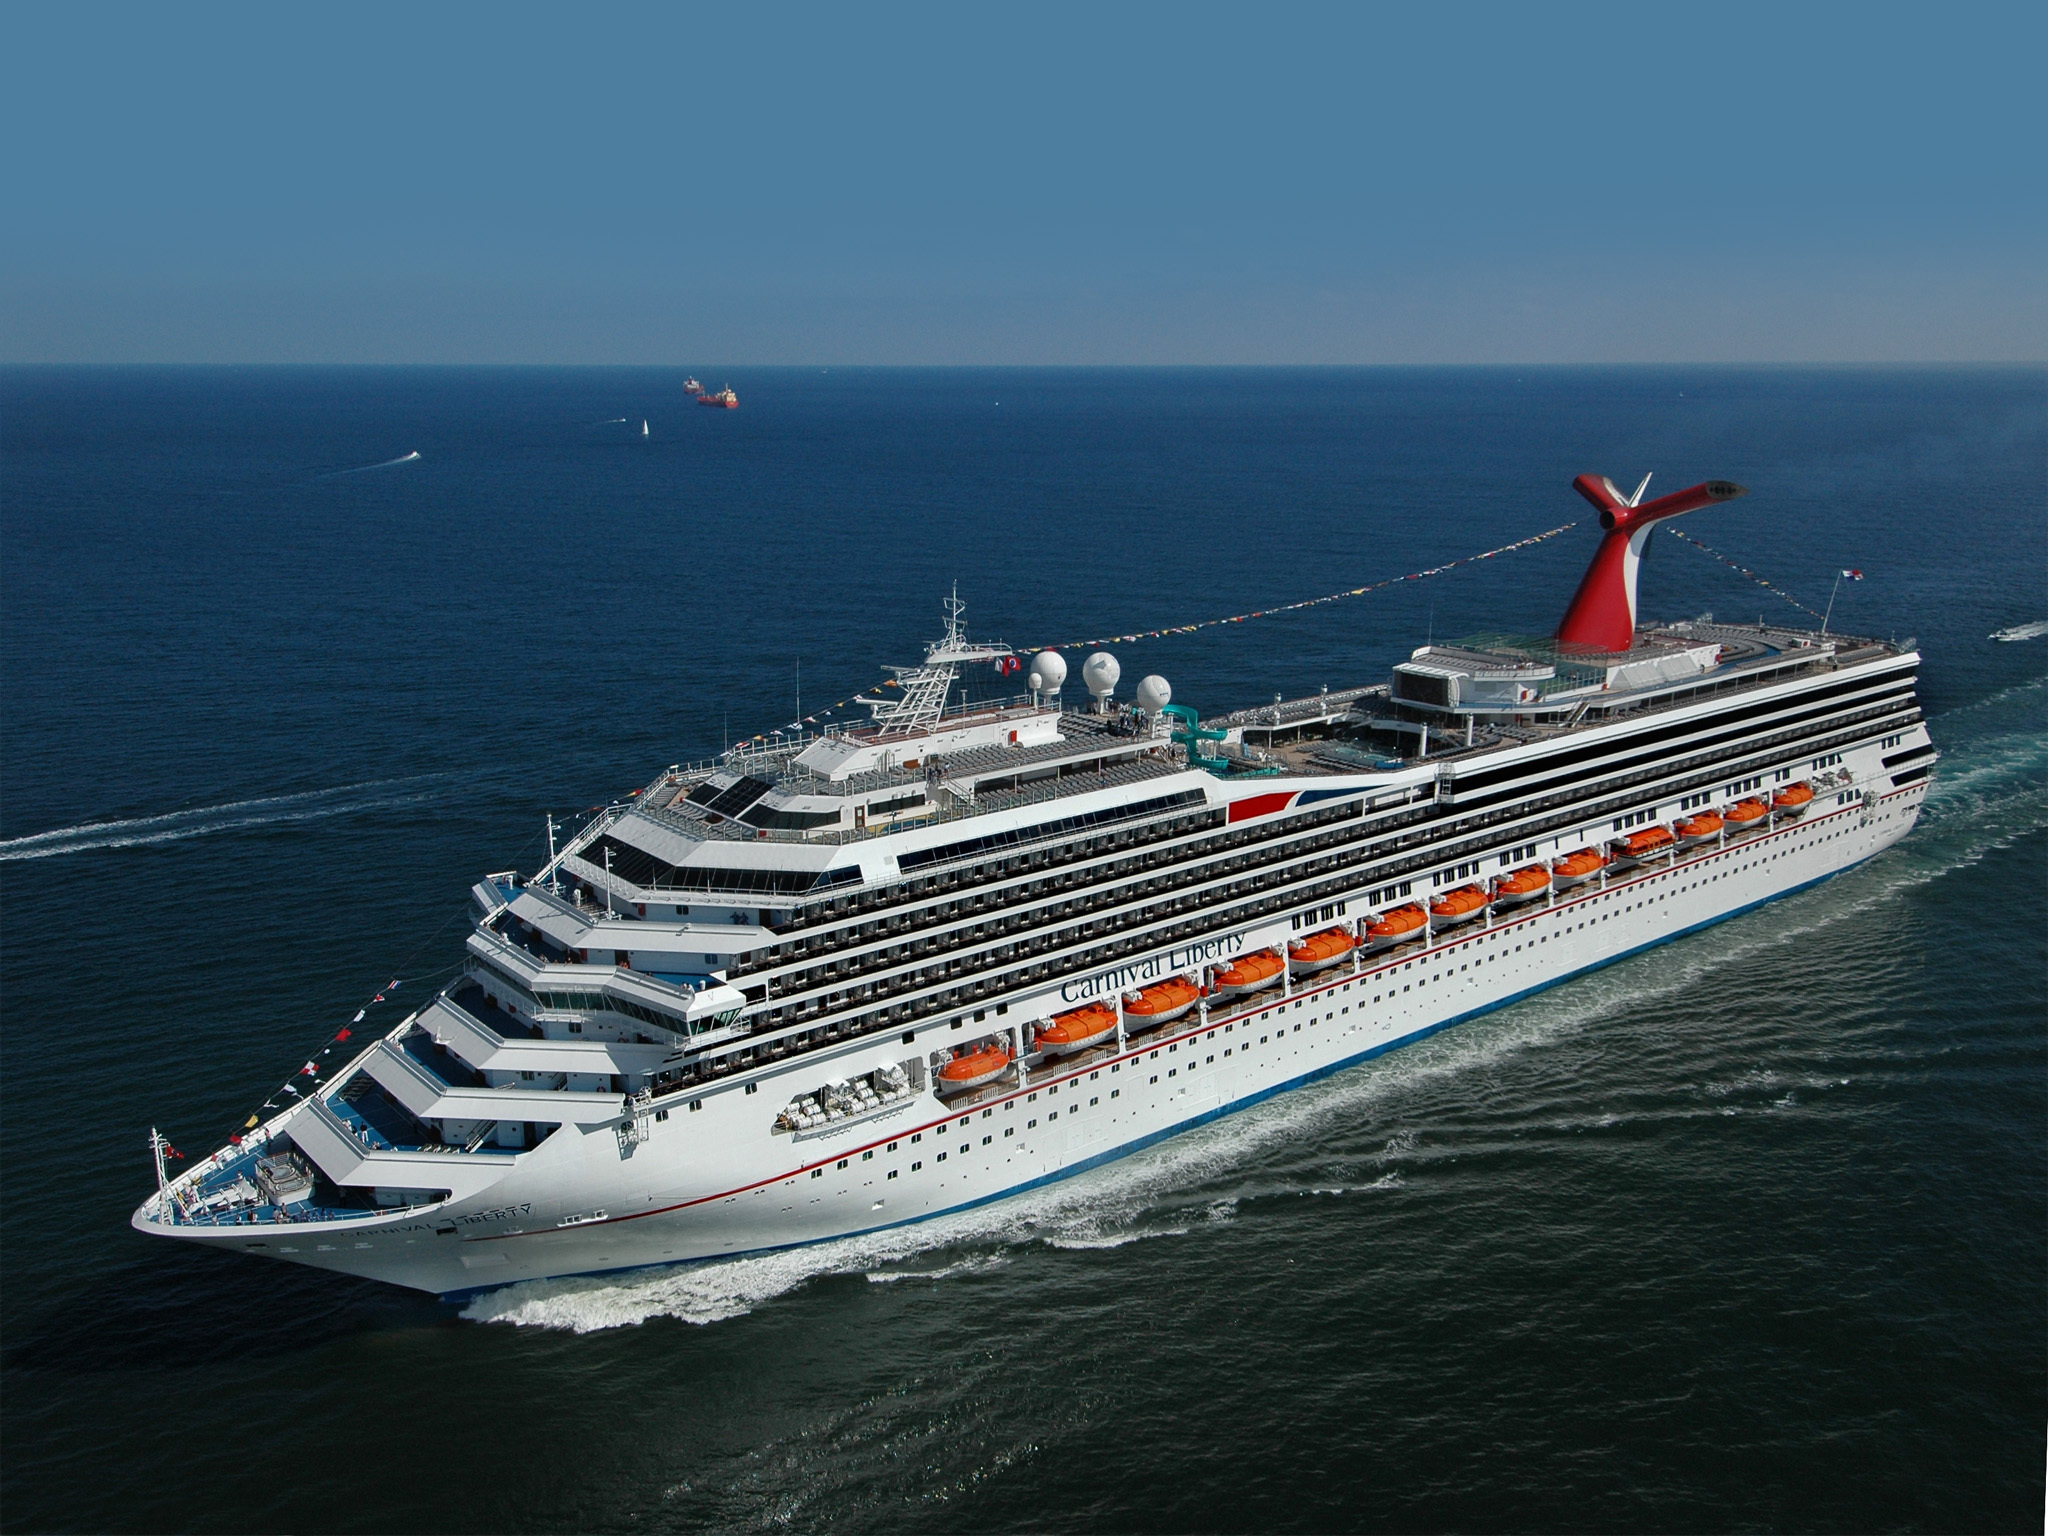 Wallpaper Carnival Liberty Carnival cruise ship ship ocean desktop 2048x1536